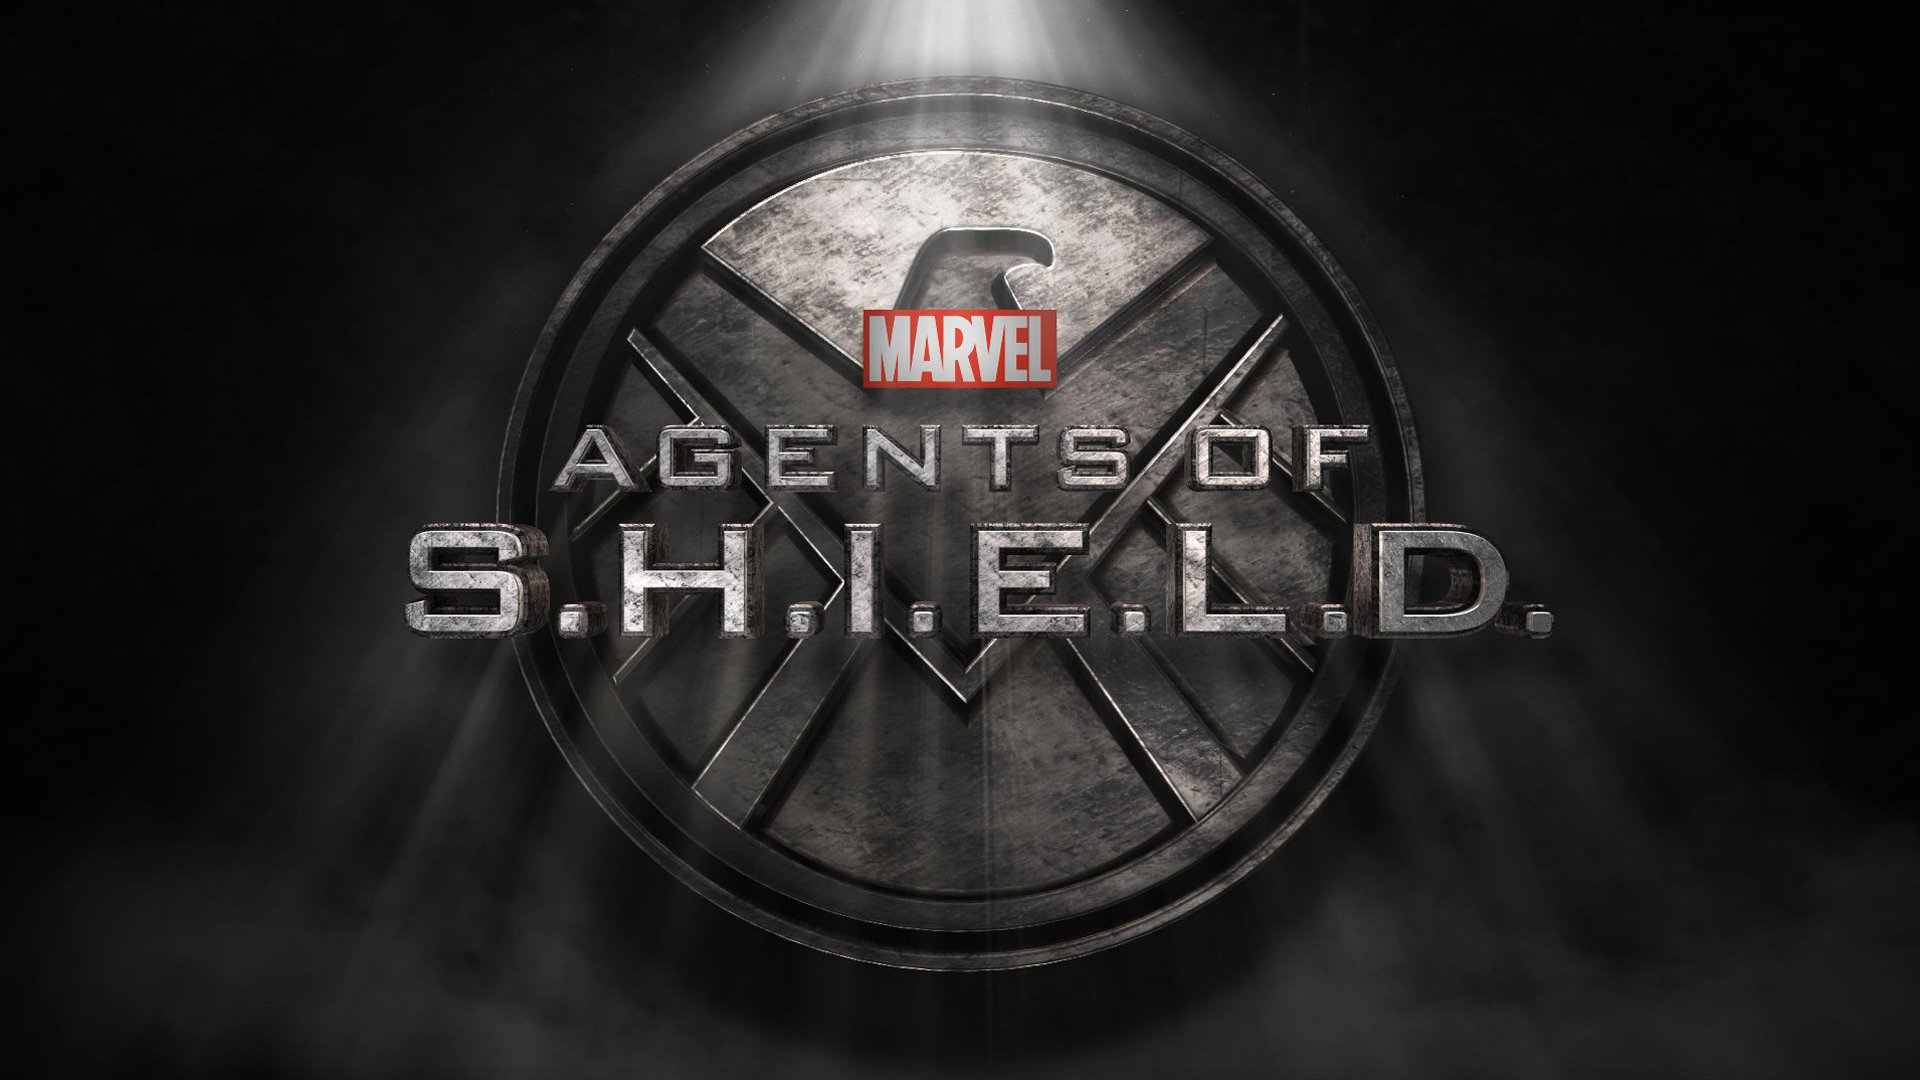 Sdcc Agents Of Shield Officially Announces That New Character